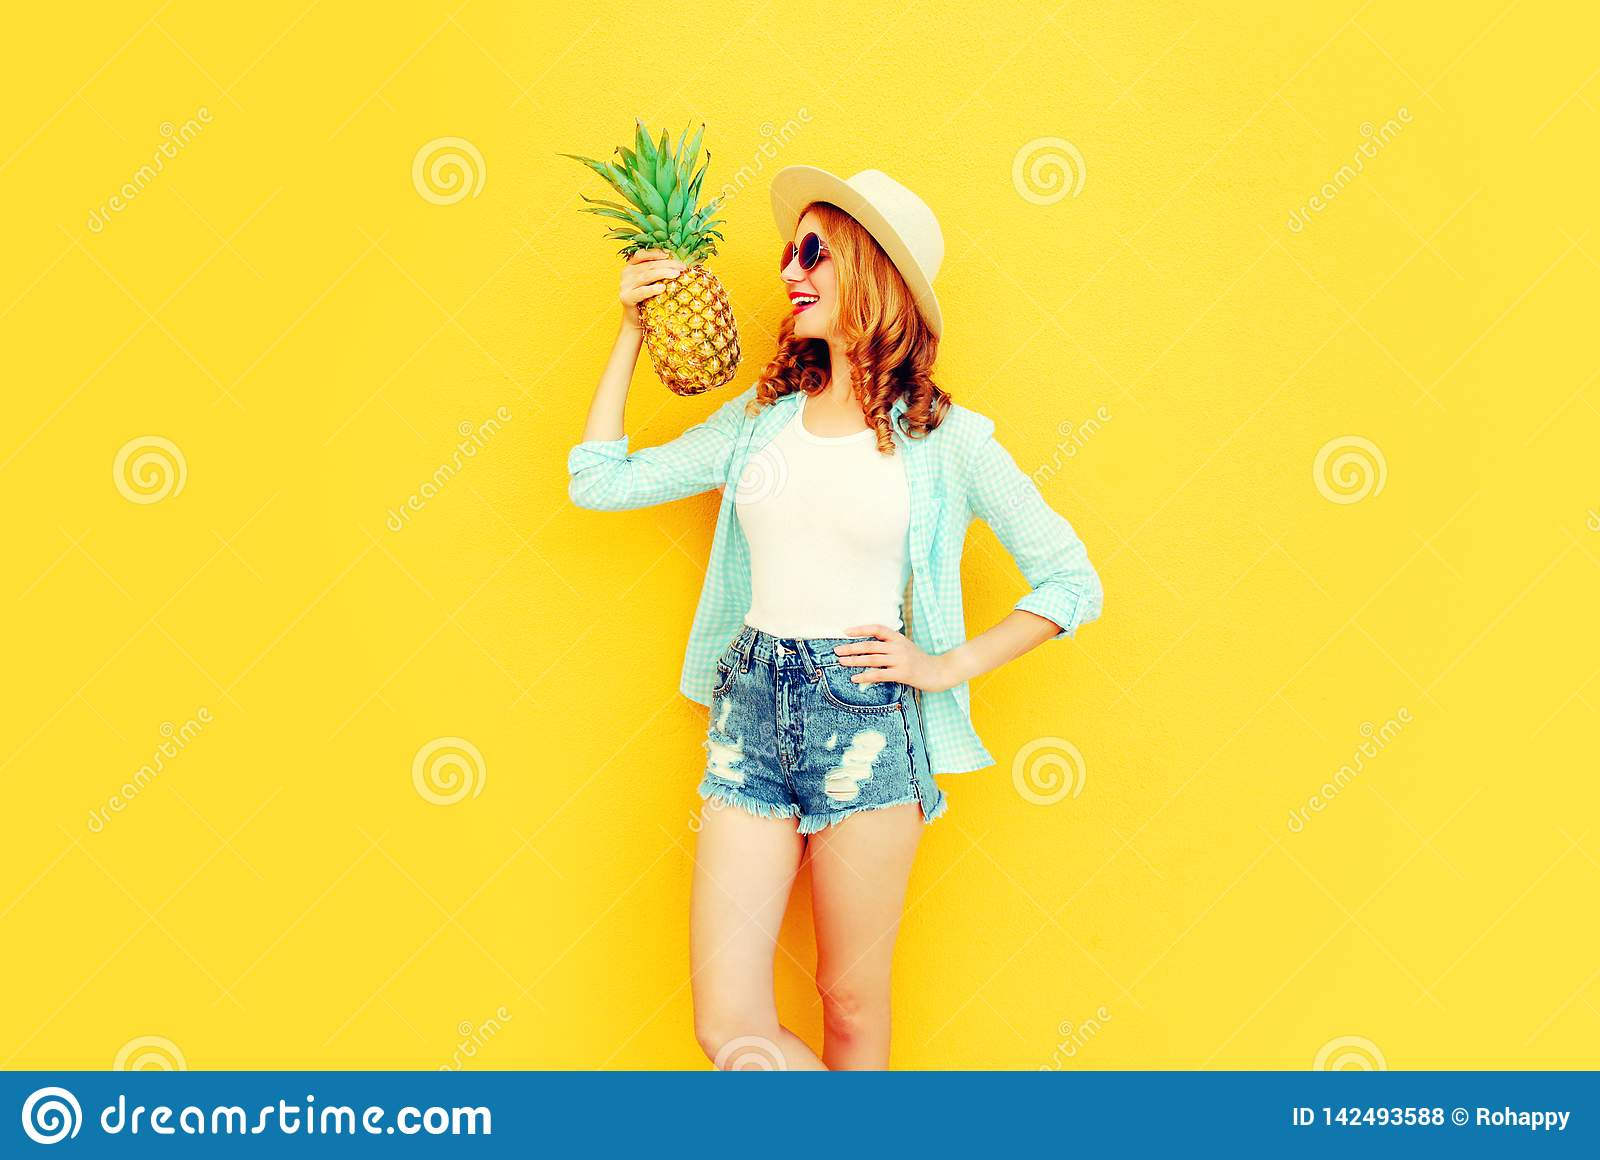 Portrait happy smiling woman holding pineapple having fun in summer straw hat, sunglasses, shorts on colorful yellow